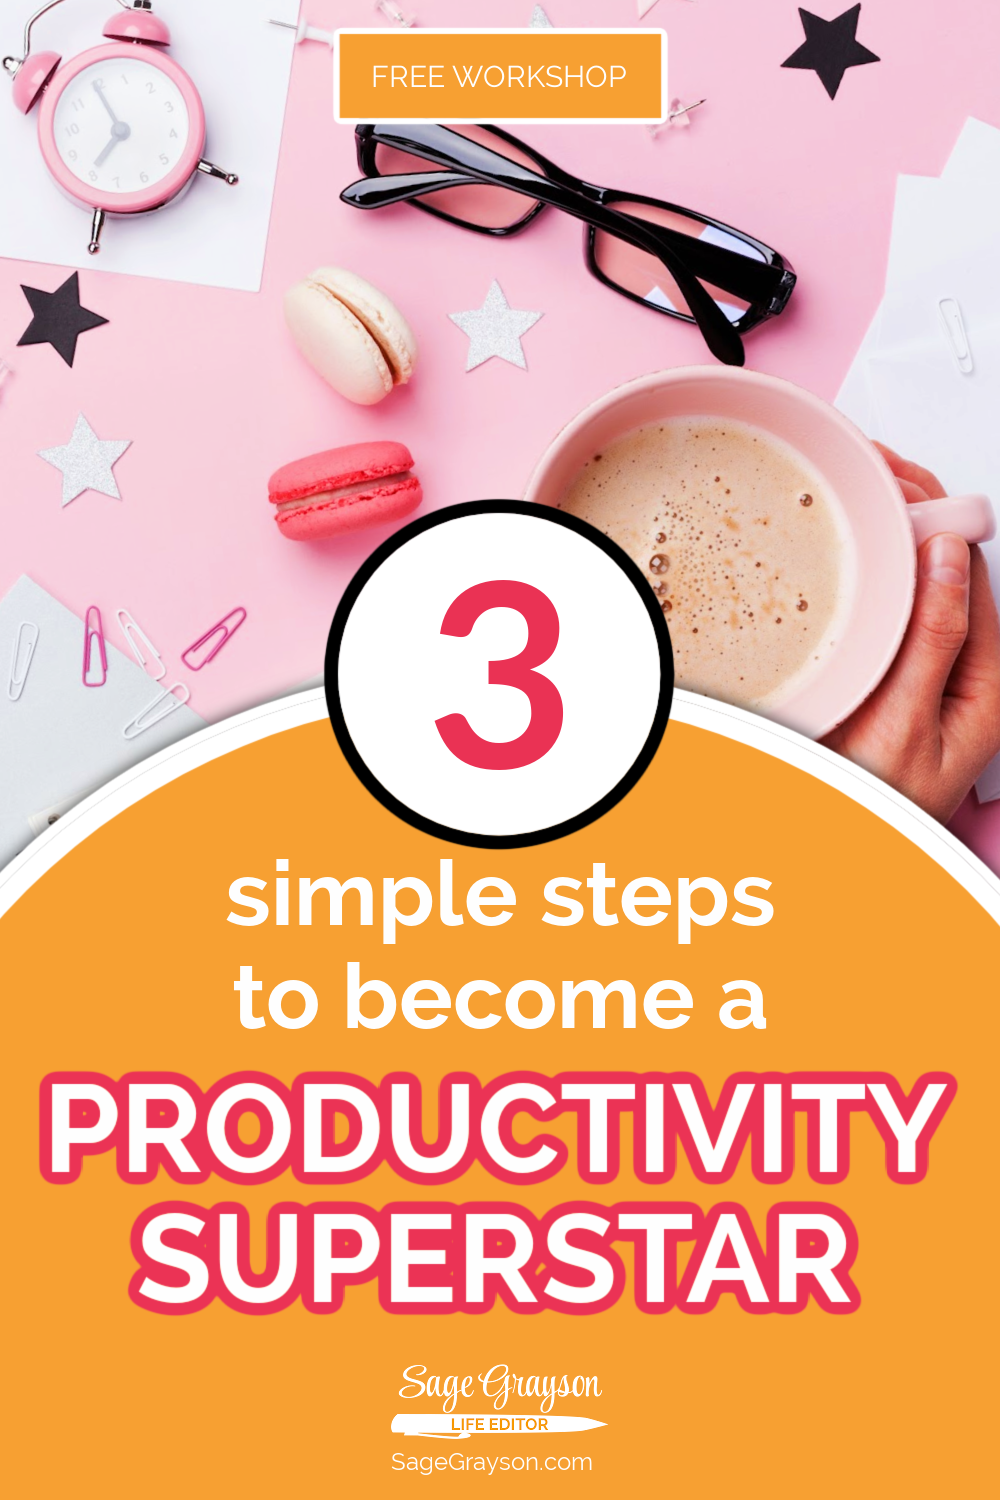 3 Simple Steps to Become a Productivity Superstar